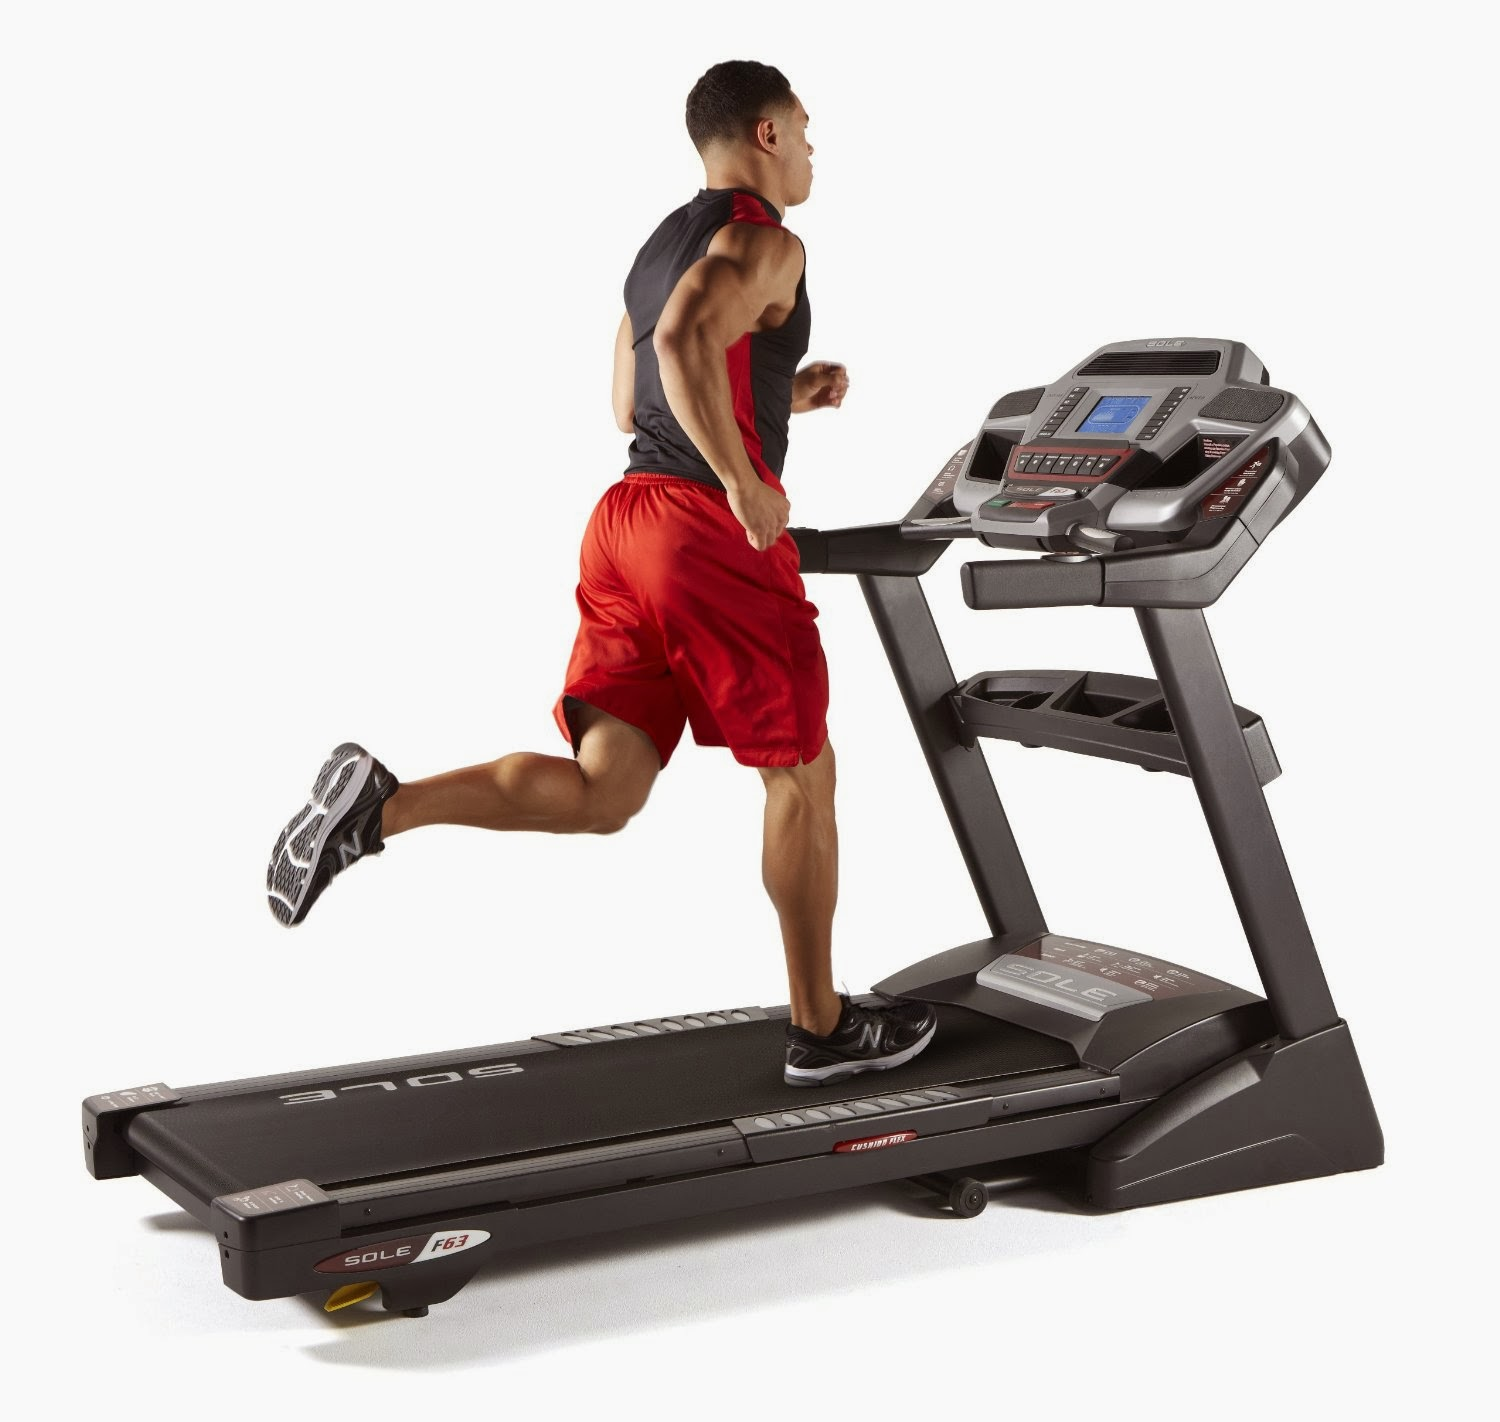 Treadmill Belt Moving Slow: Nits Fitness Mantra: TREADMILL OR ELLIPTICAL: HOW DO I DECIDE?